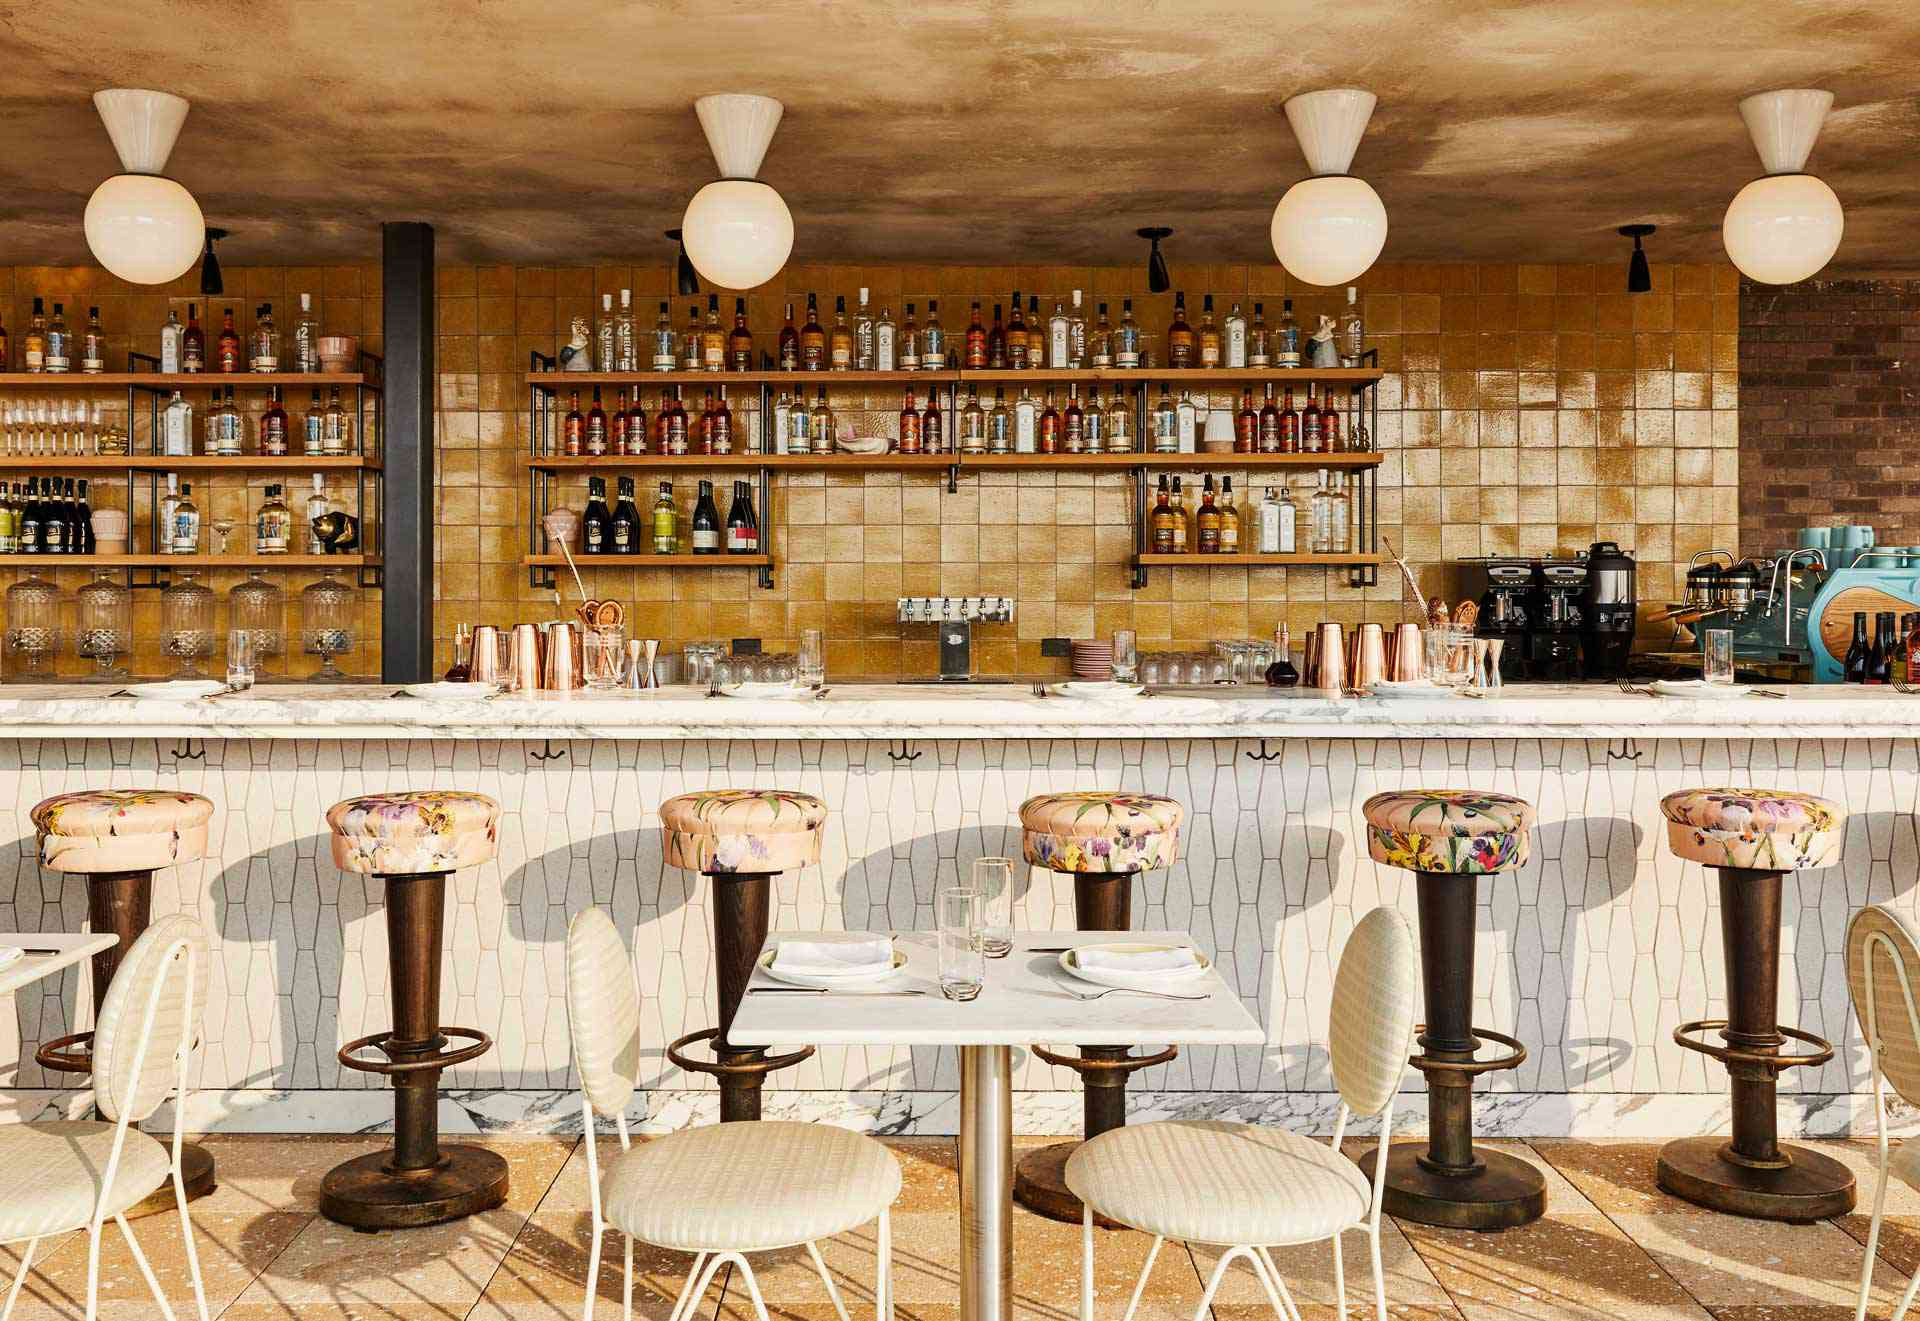 White tiled outdoor bar with stools covered in floral ulphostery